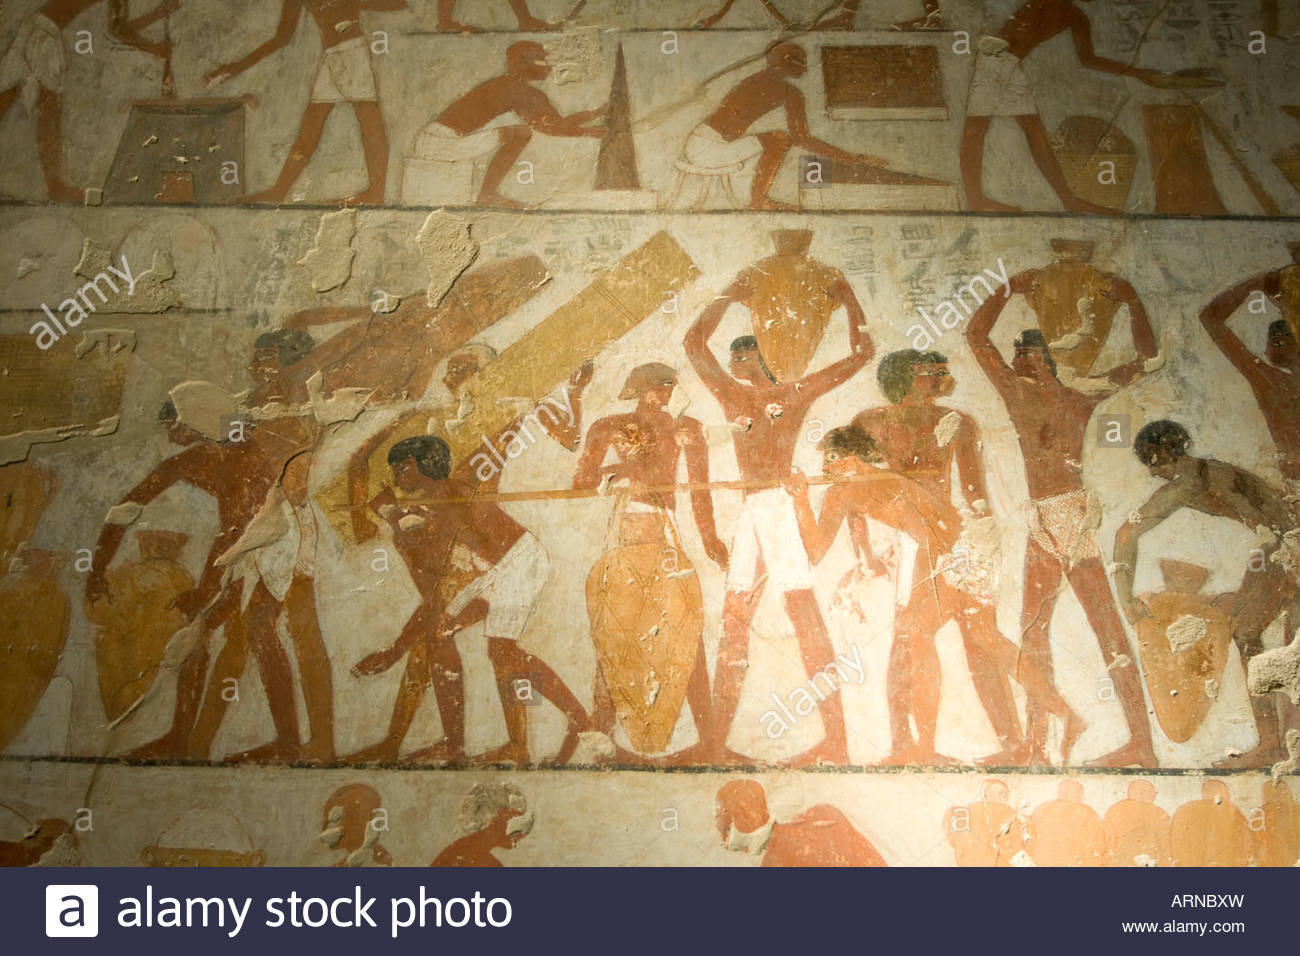 Tombs of the Nobles Luxor, Hieroglyphs in the tomb of Rechmire or Rekhmire Tombs of the ...